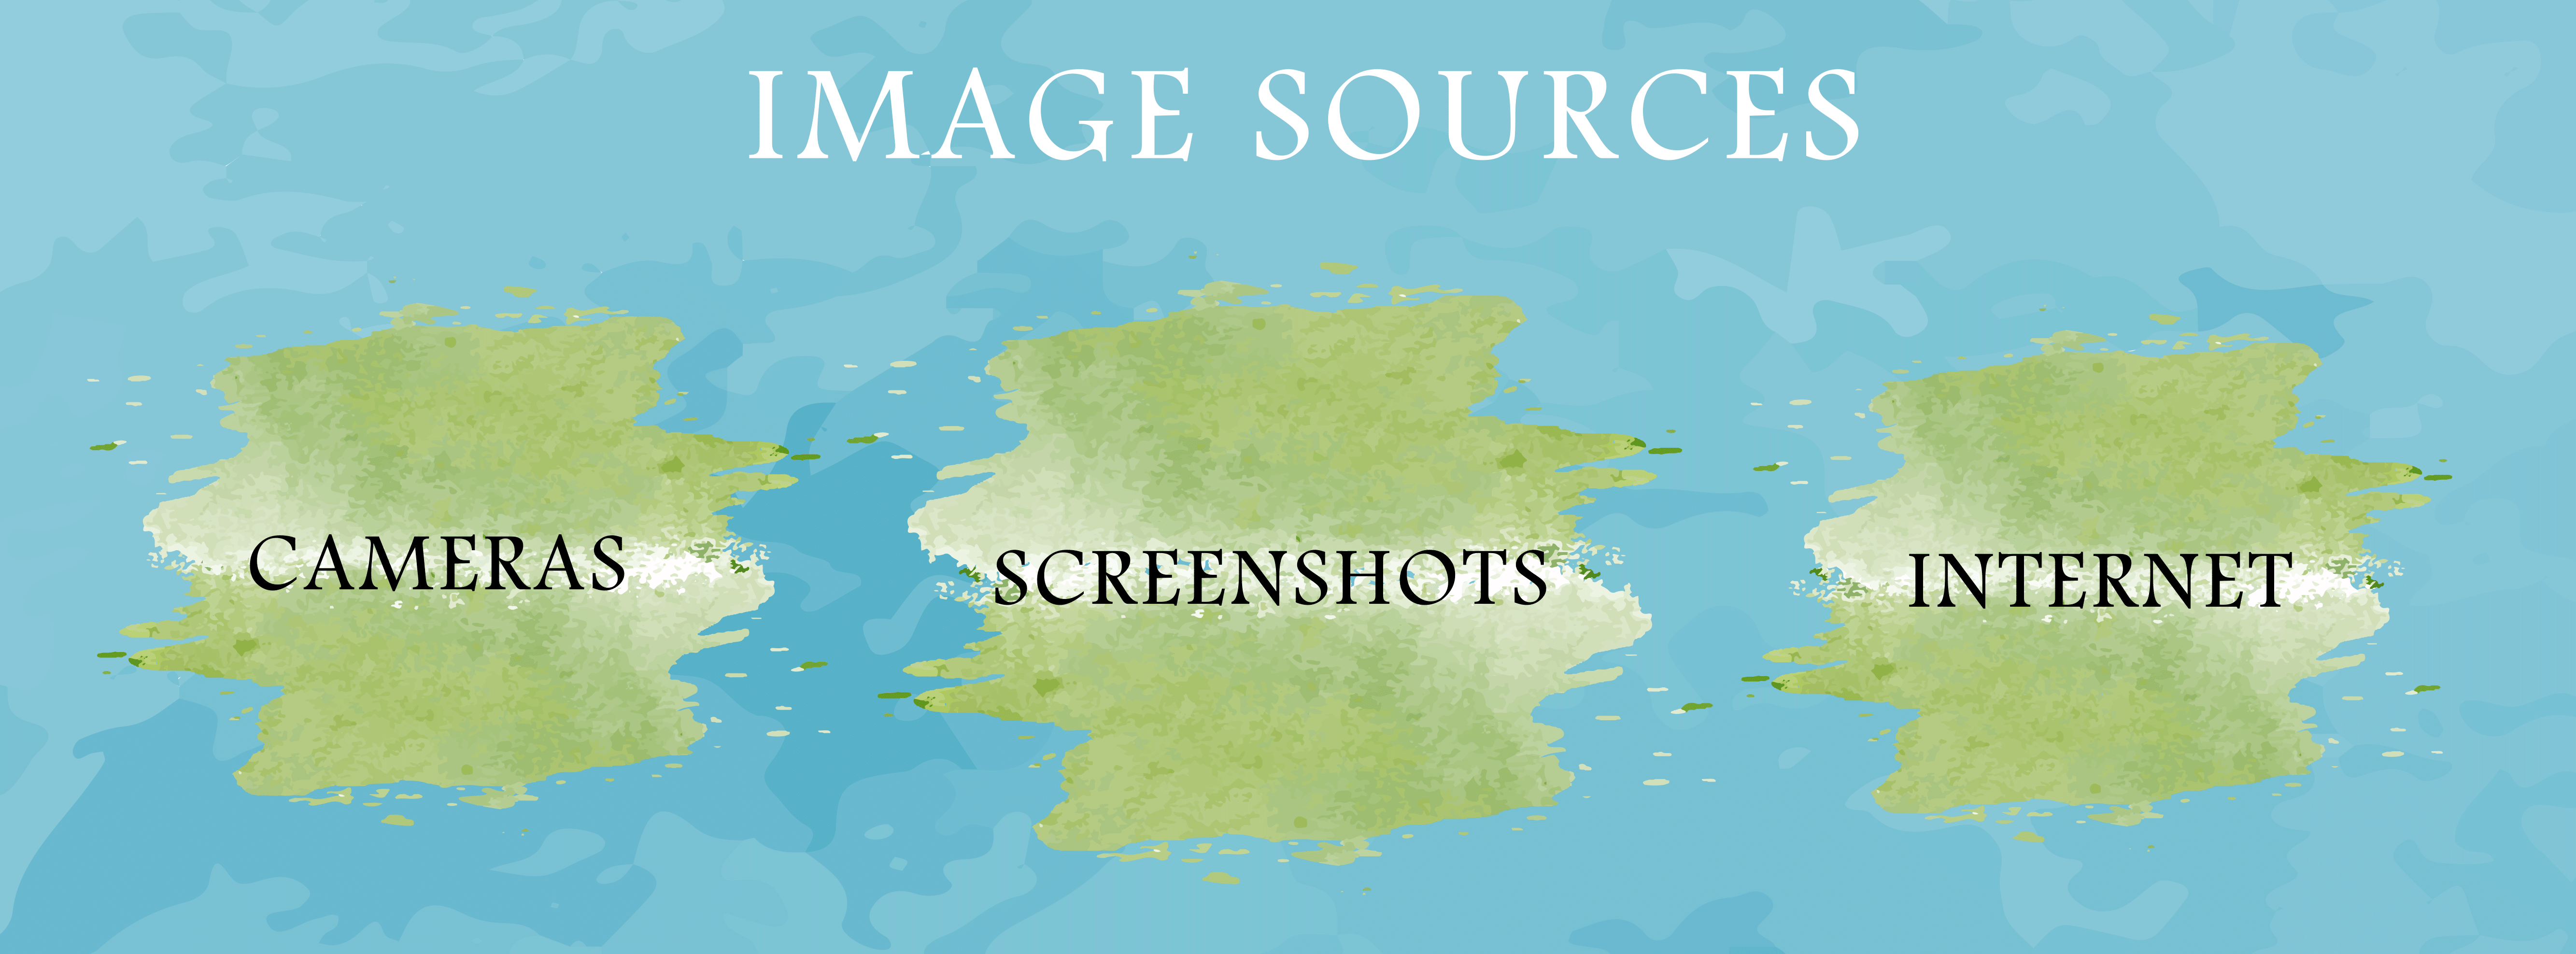 Graphic showing different image sources including cameras, screenshots and the internet